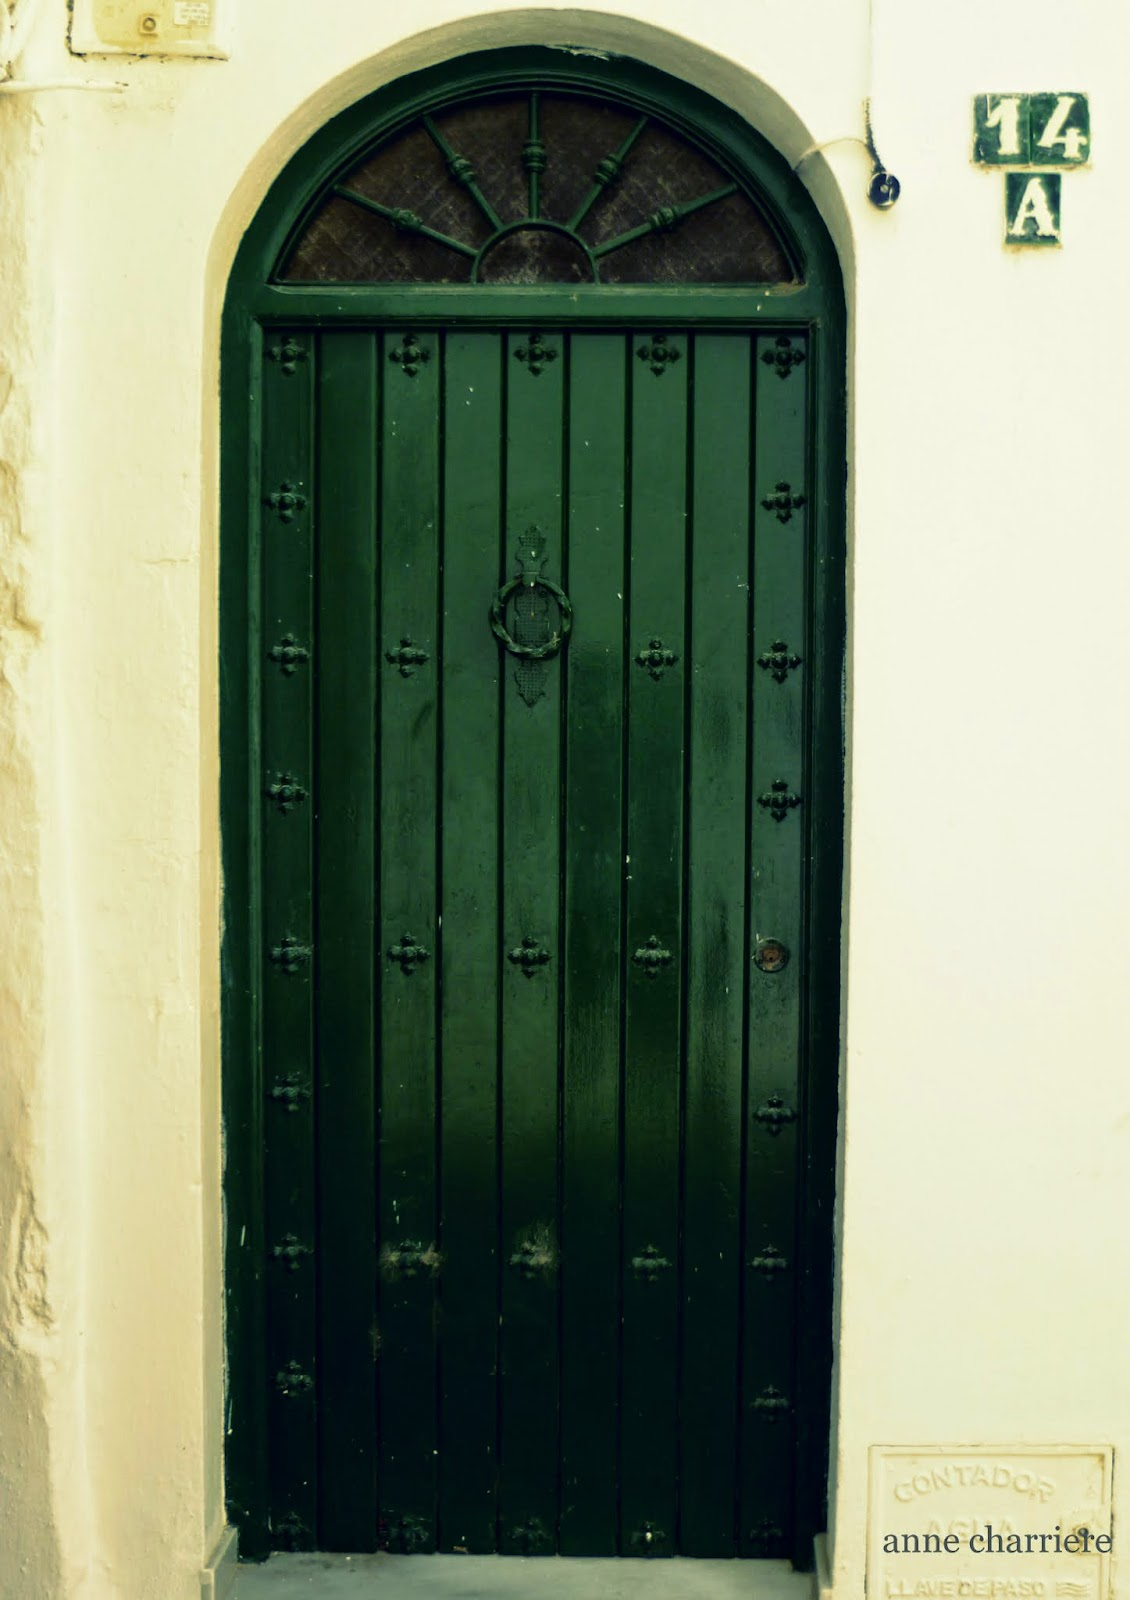 anne charriere, encanto, andalucia, charming,